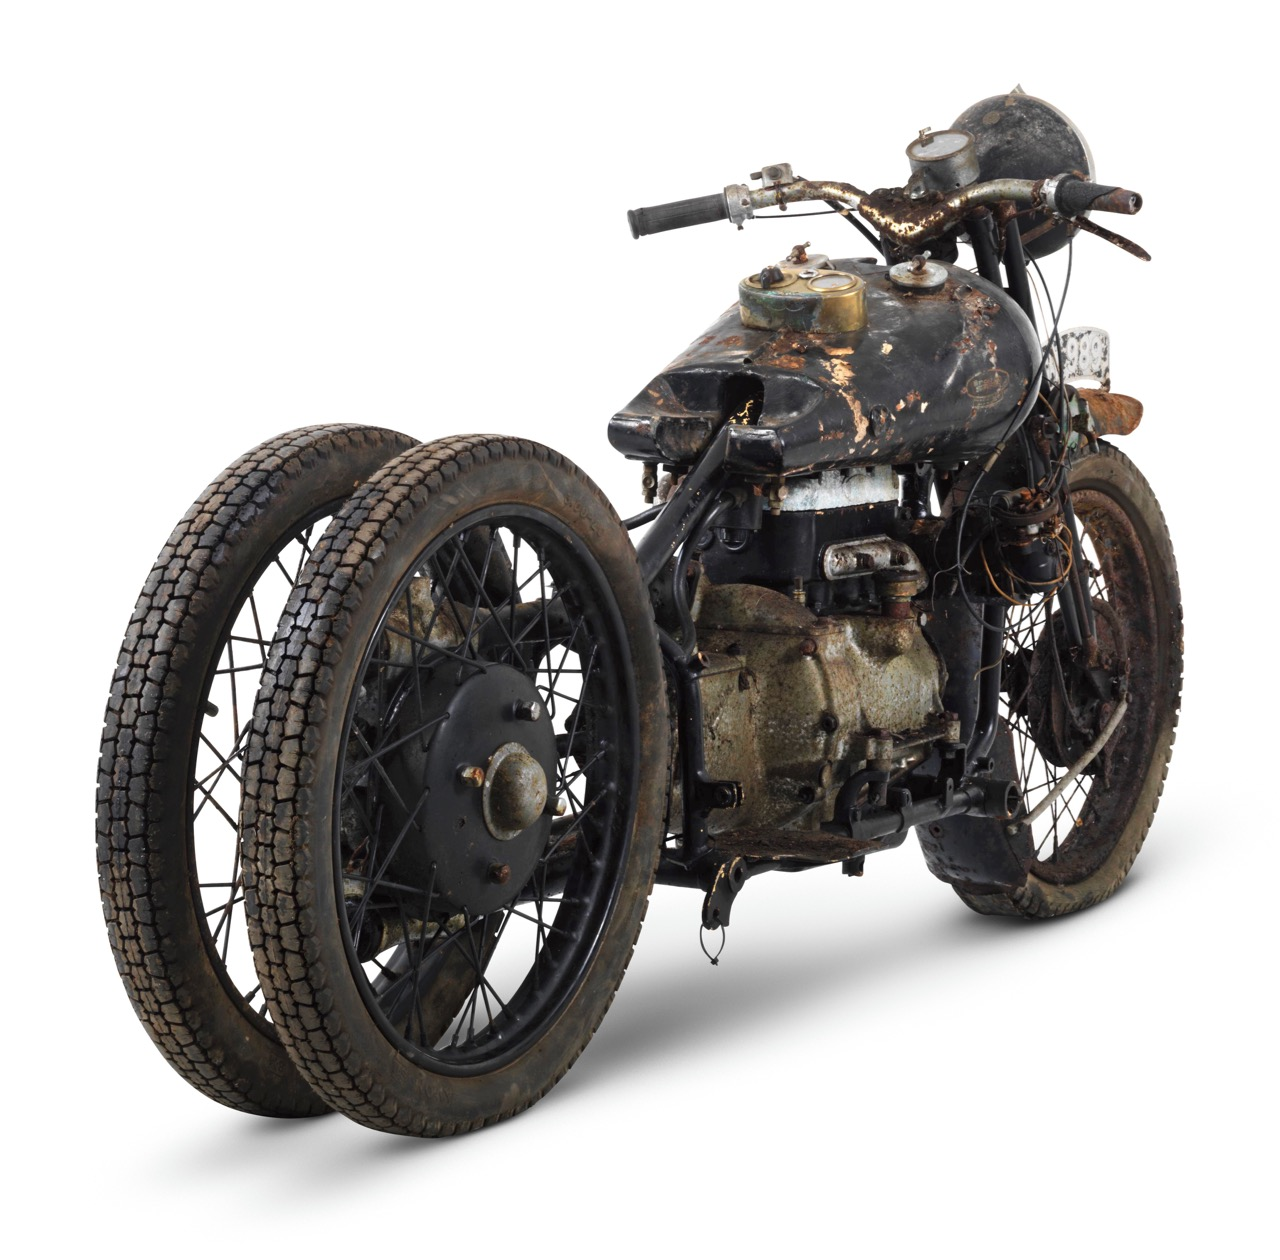 Only 10 of these motorcycles were built. Seven survive